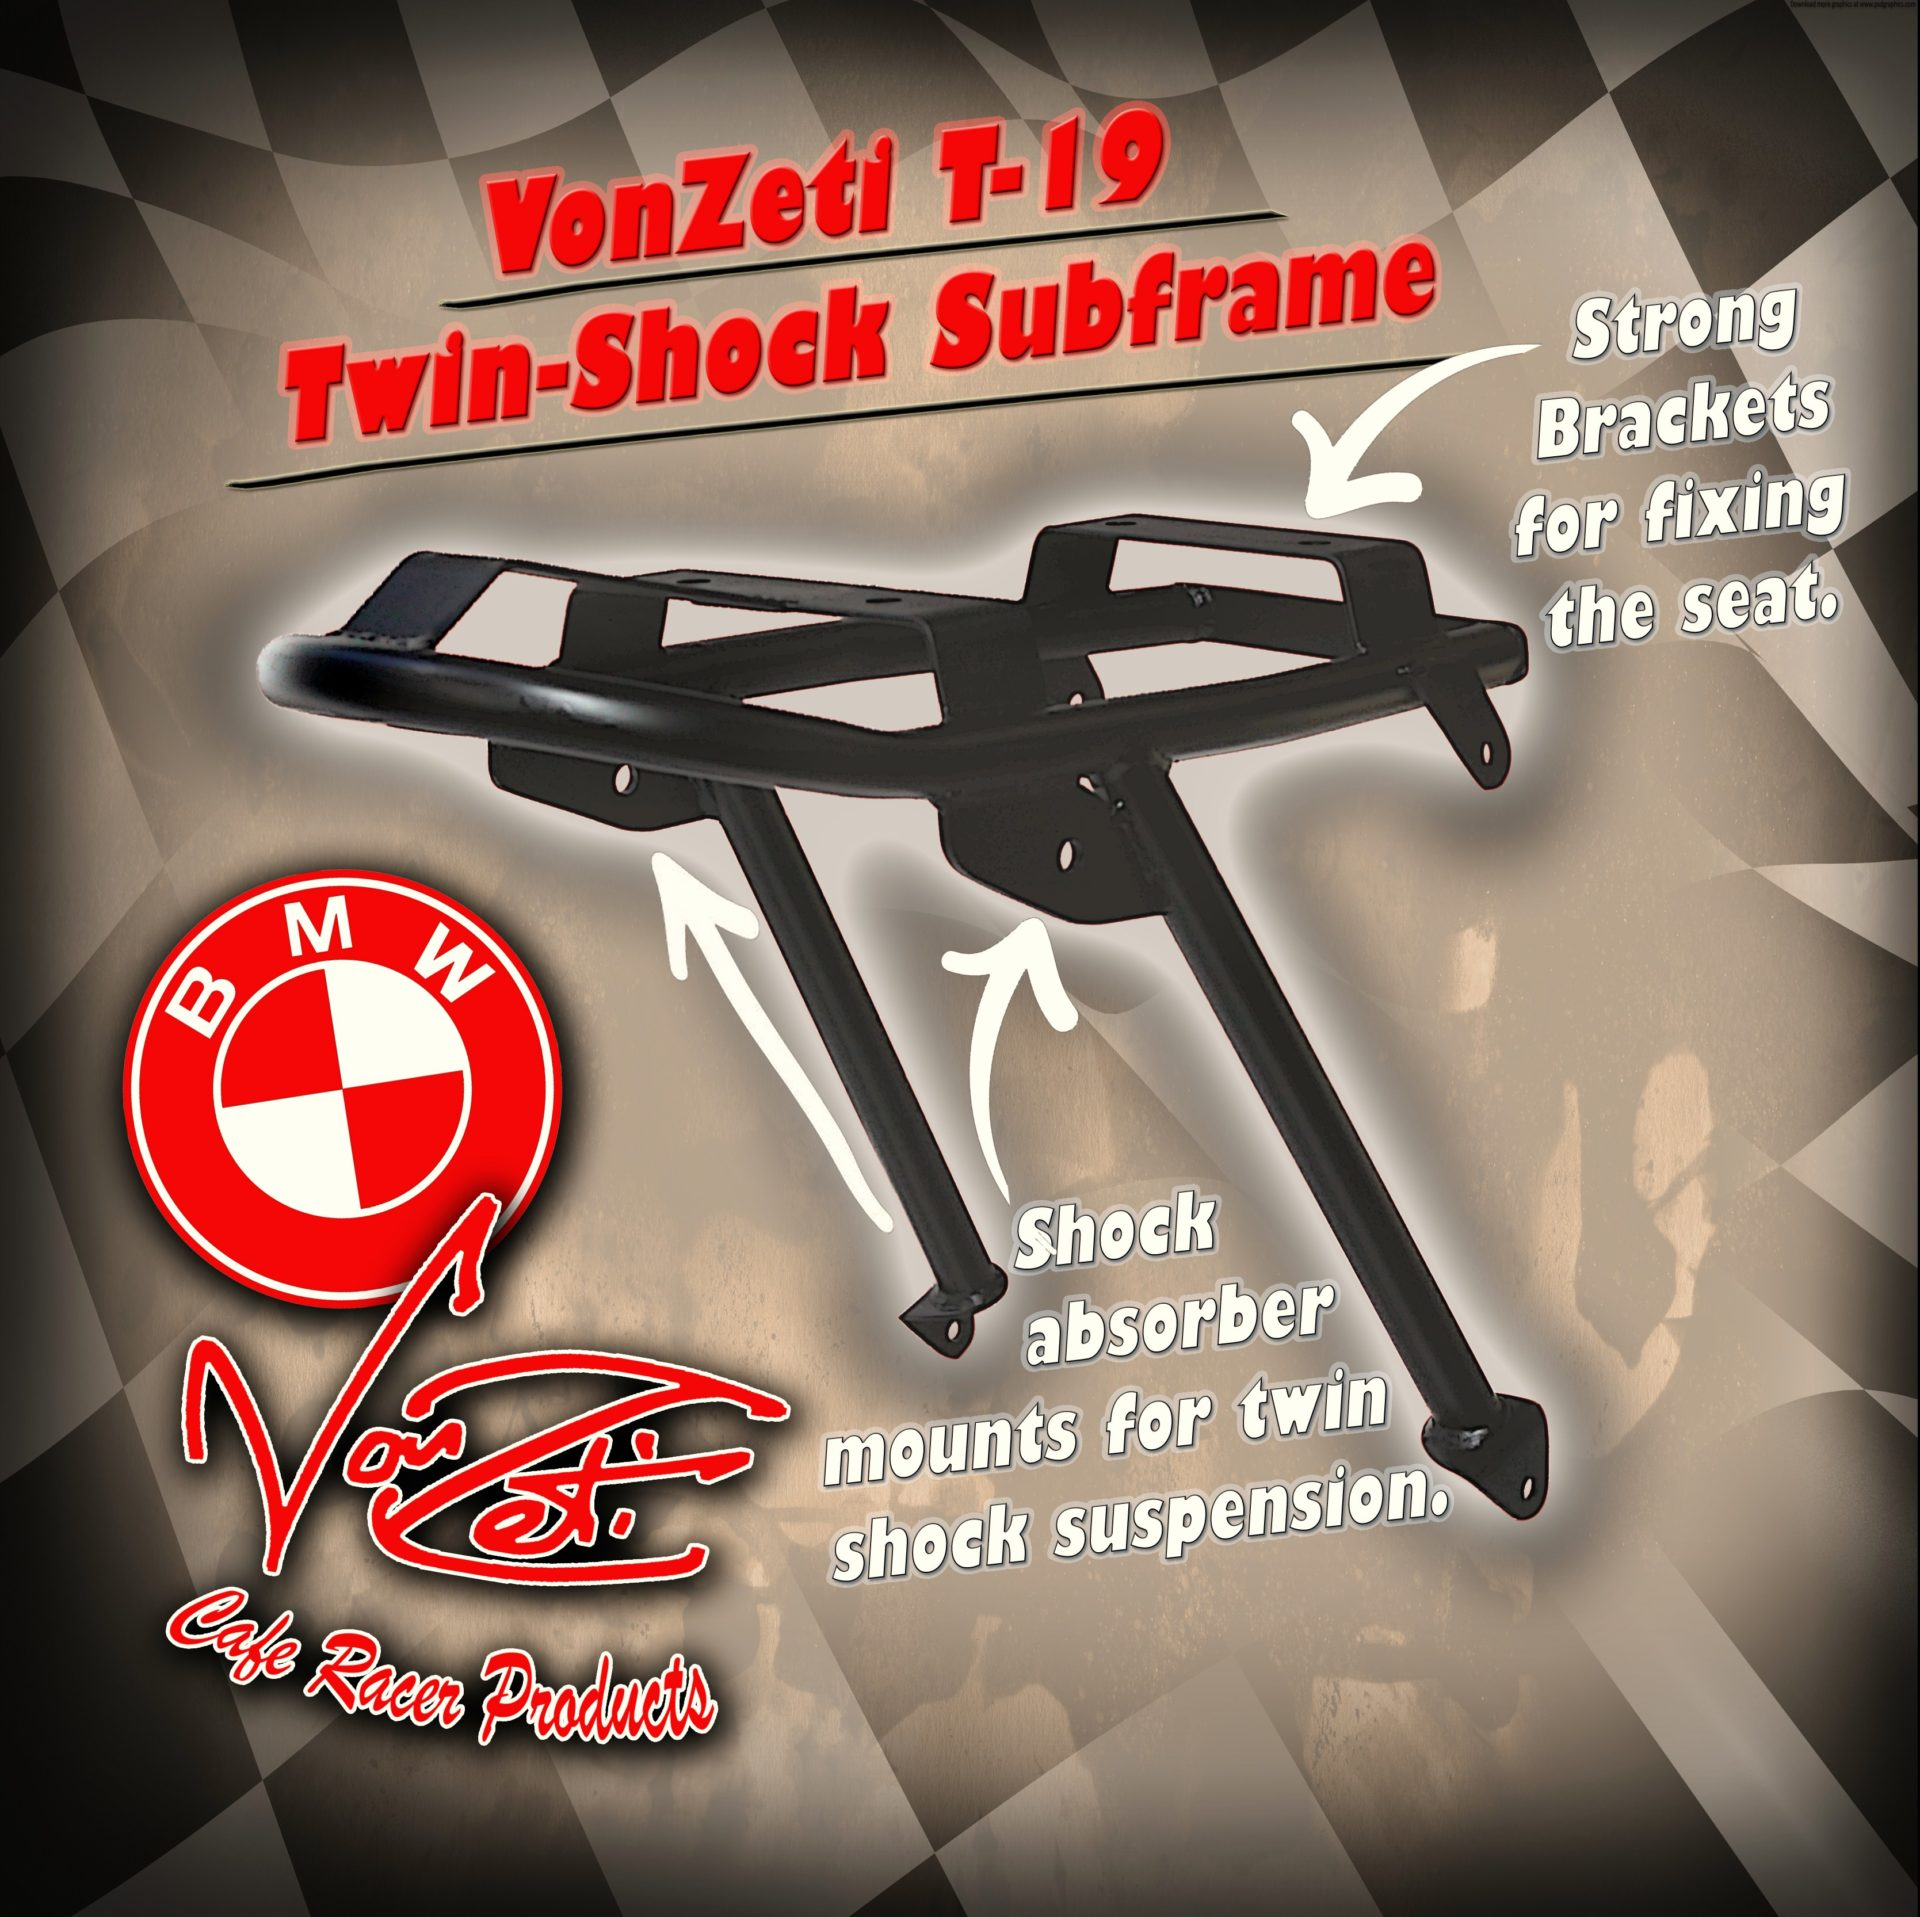 T19 Twin-Shock BMW Subframe